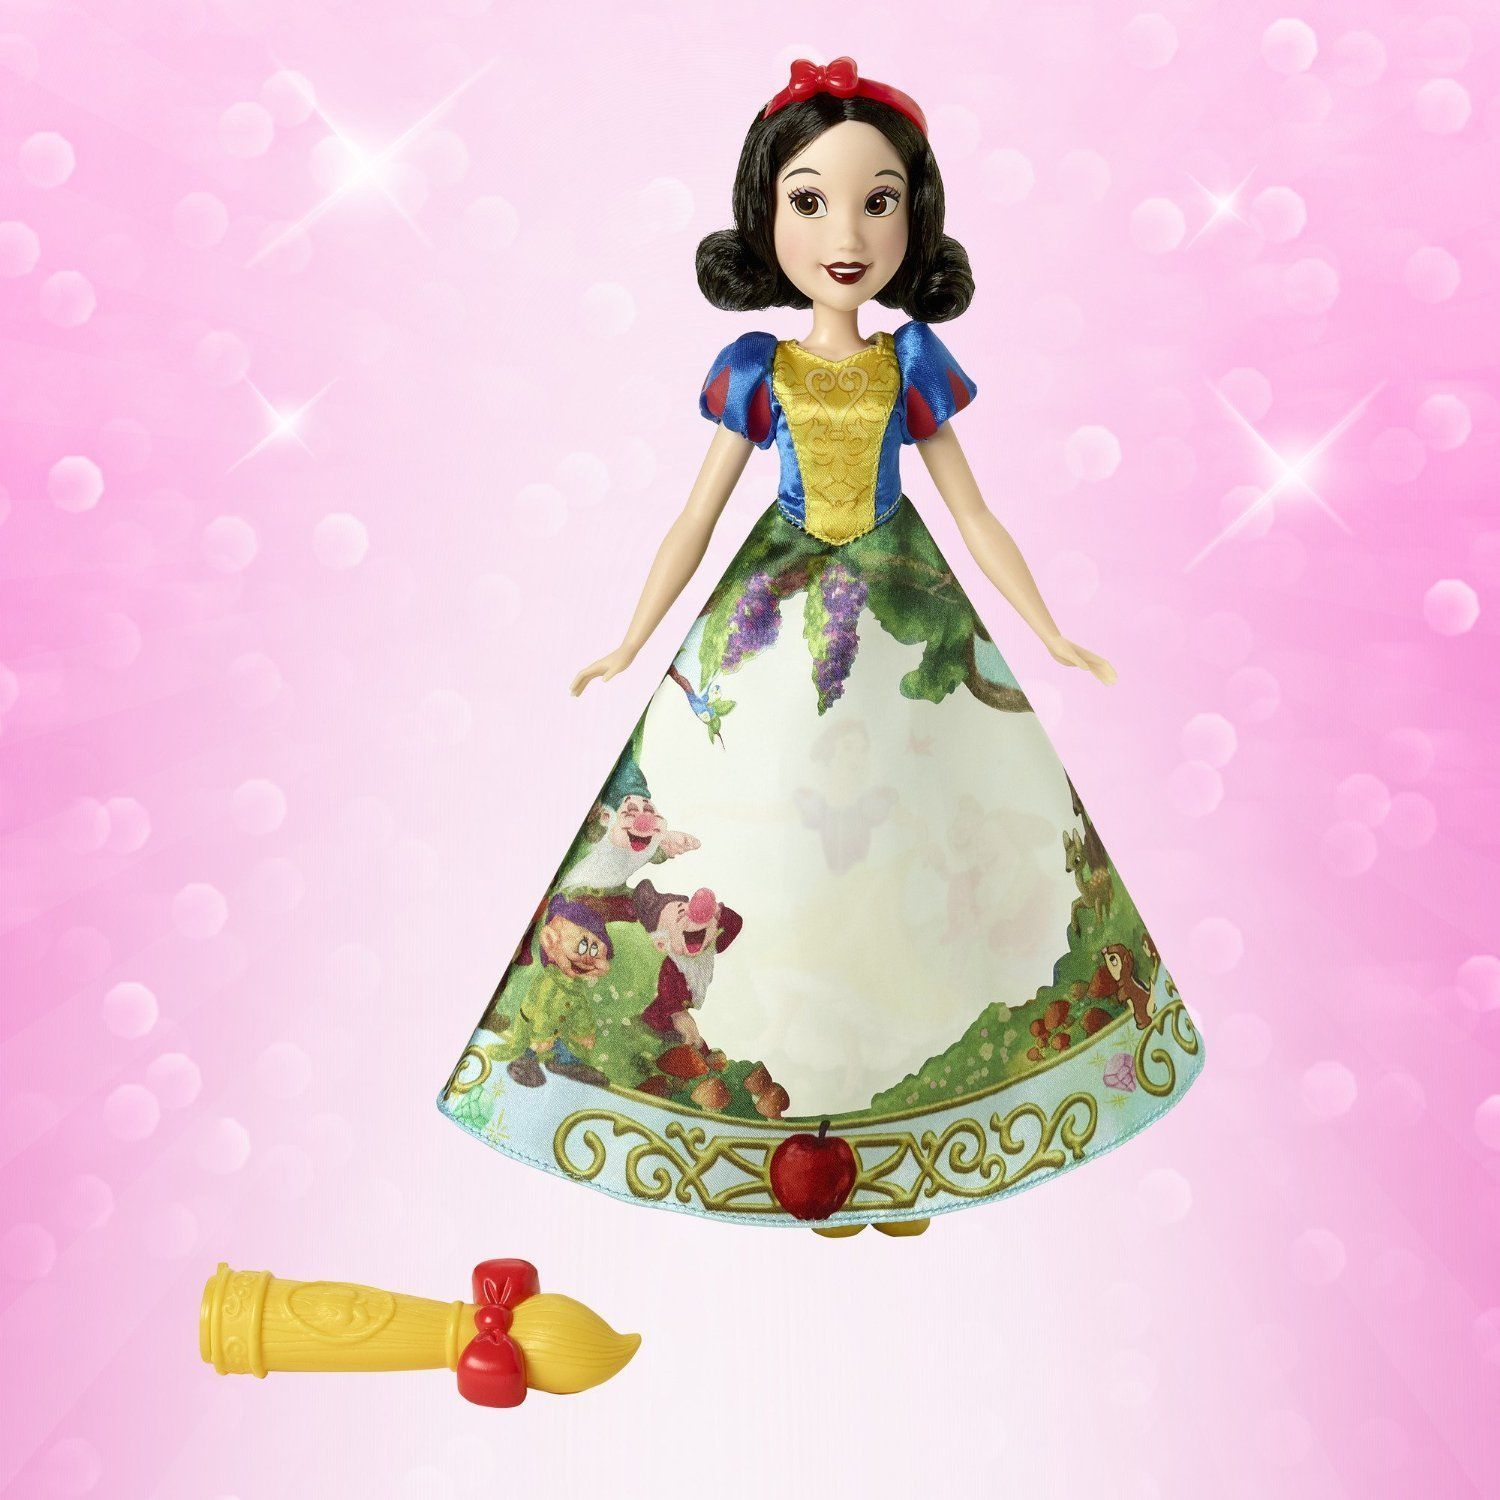 Image 1 of Disney Princess Snow White Magical Story Skirt Doll in Blue, Yellow by Hasbro